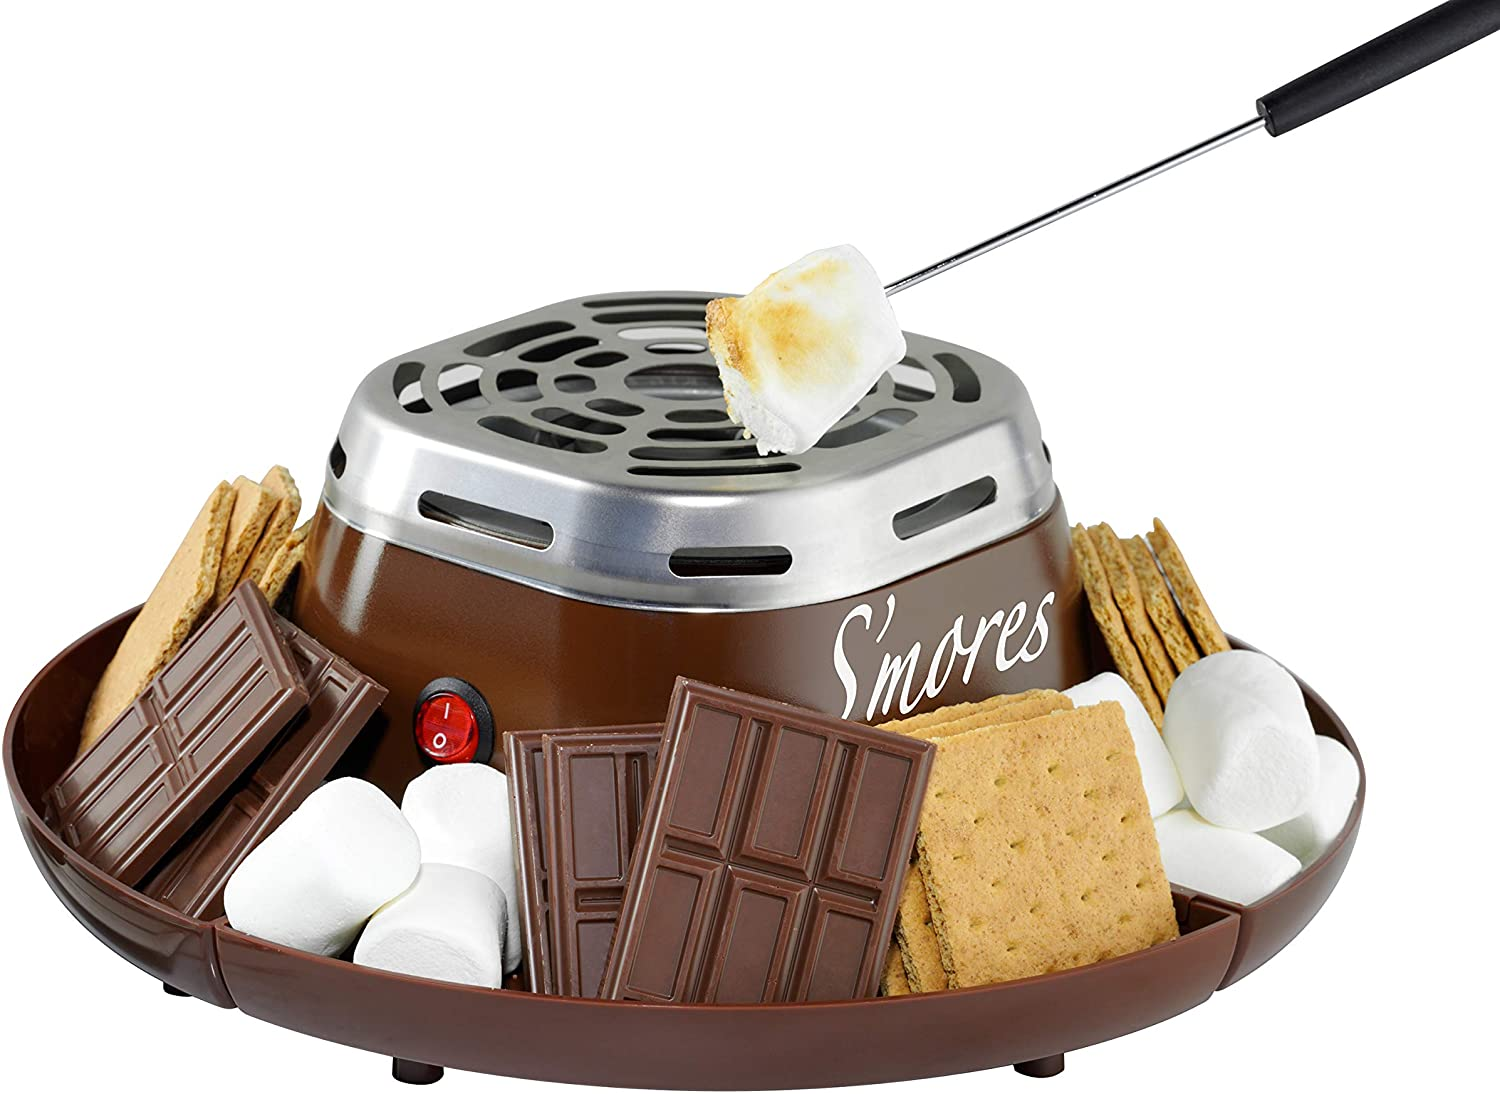 Indoor Electric Stainless Steel Smores Maker